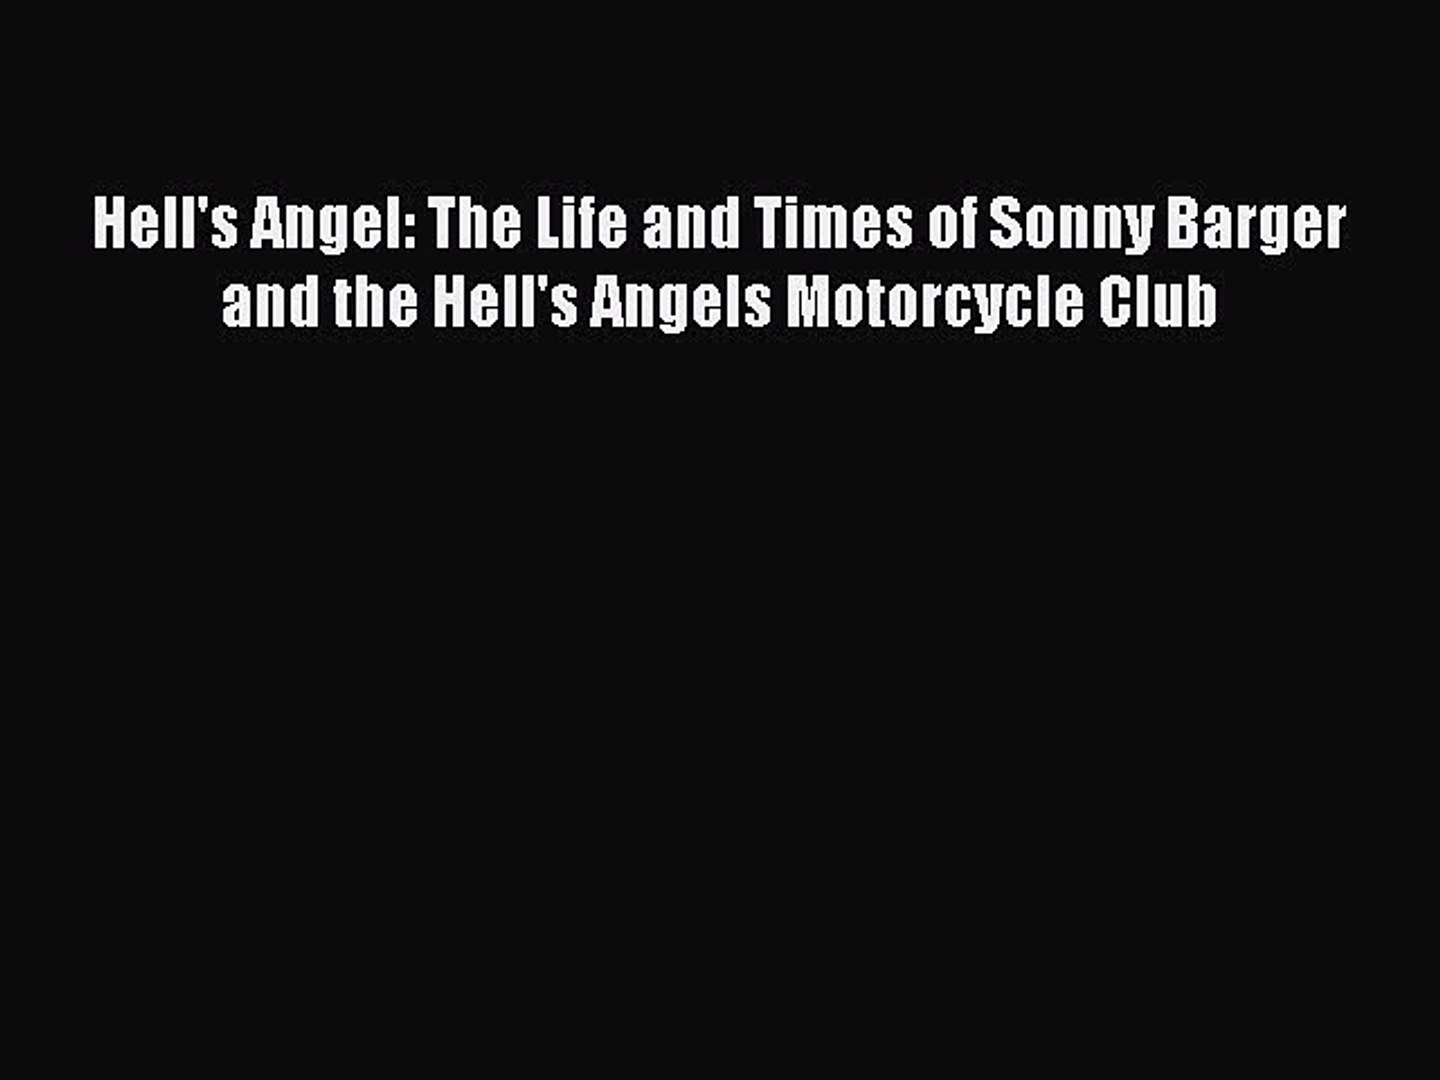 Read Hell's Angel: The Life and Times of Sonny Barger and the Hell's Angels Motorcycle Clu